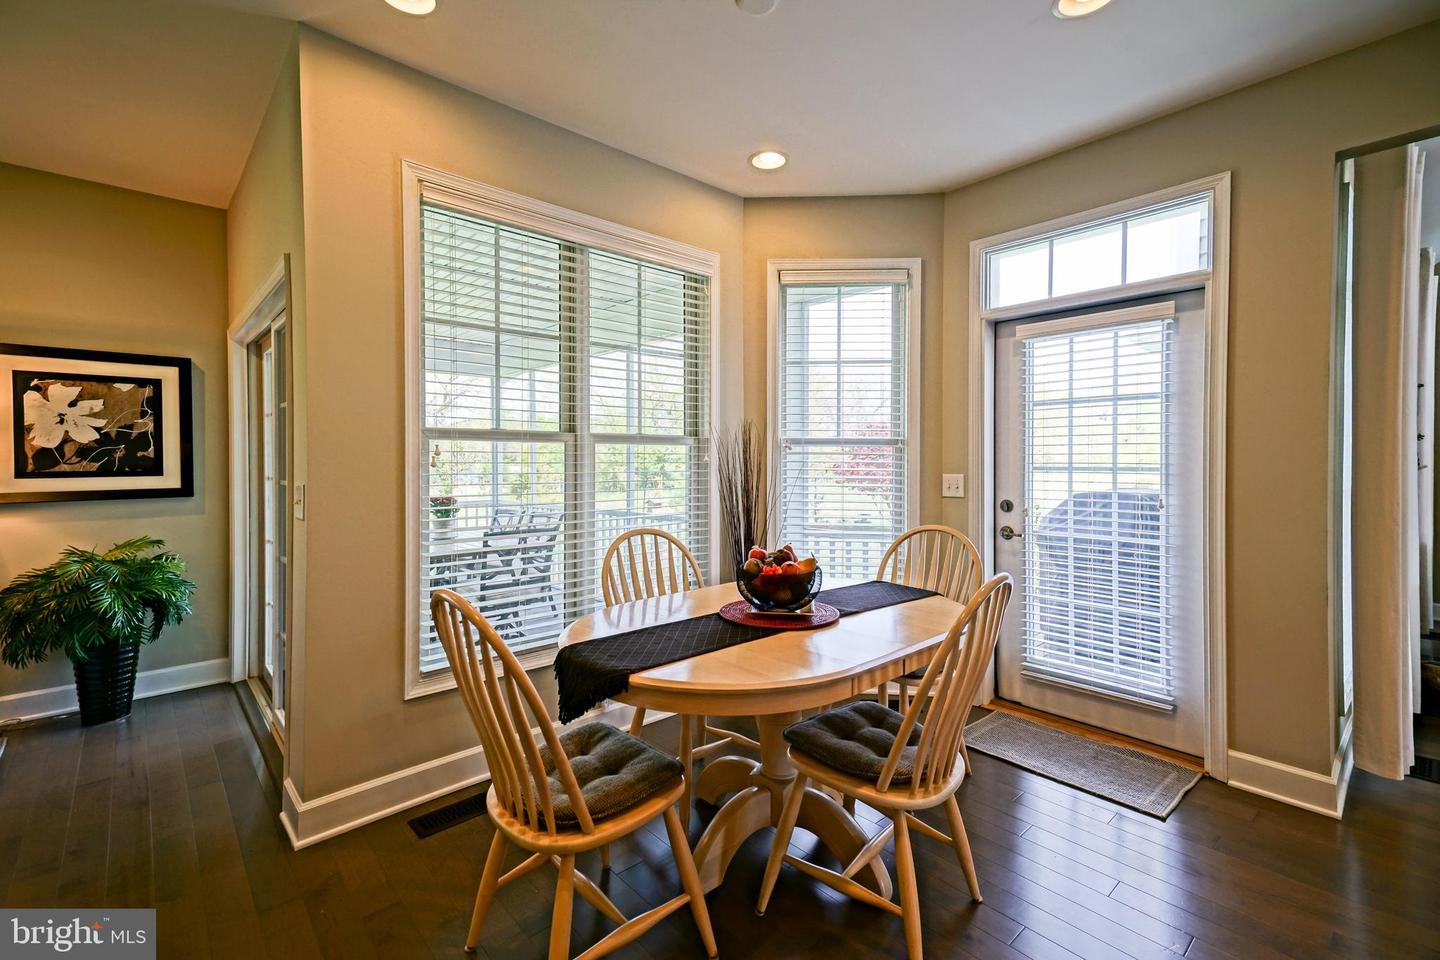 DESU139128-301667379387-2019-08-05-10-43-55 35222 Overfalls Dr N | Lewes, DE Real Estate For Sale | MLS# Desu139128  - Lee Ann Group